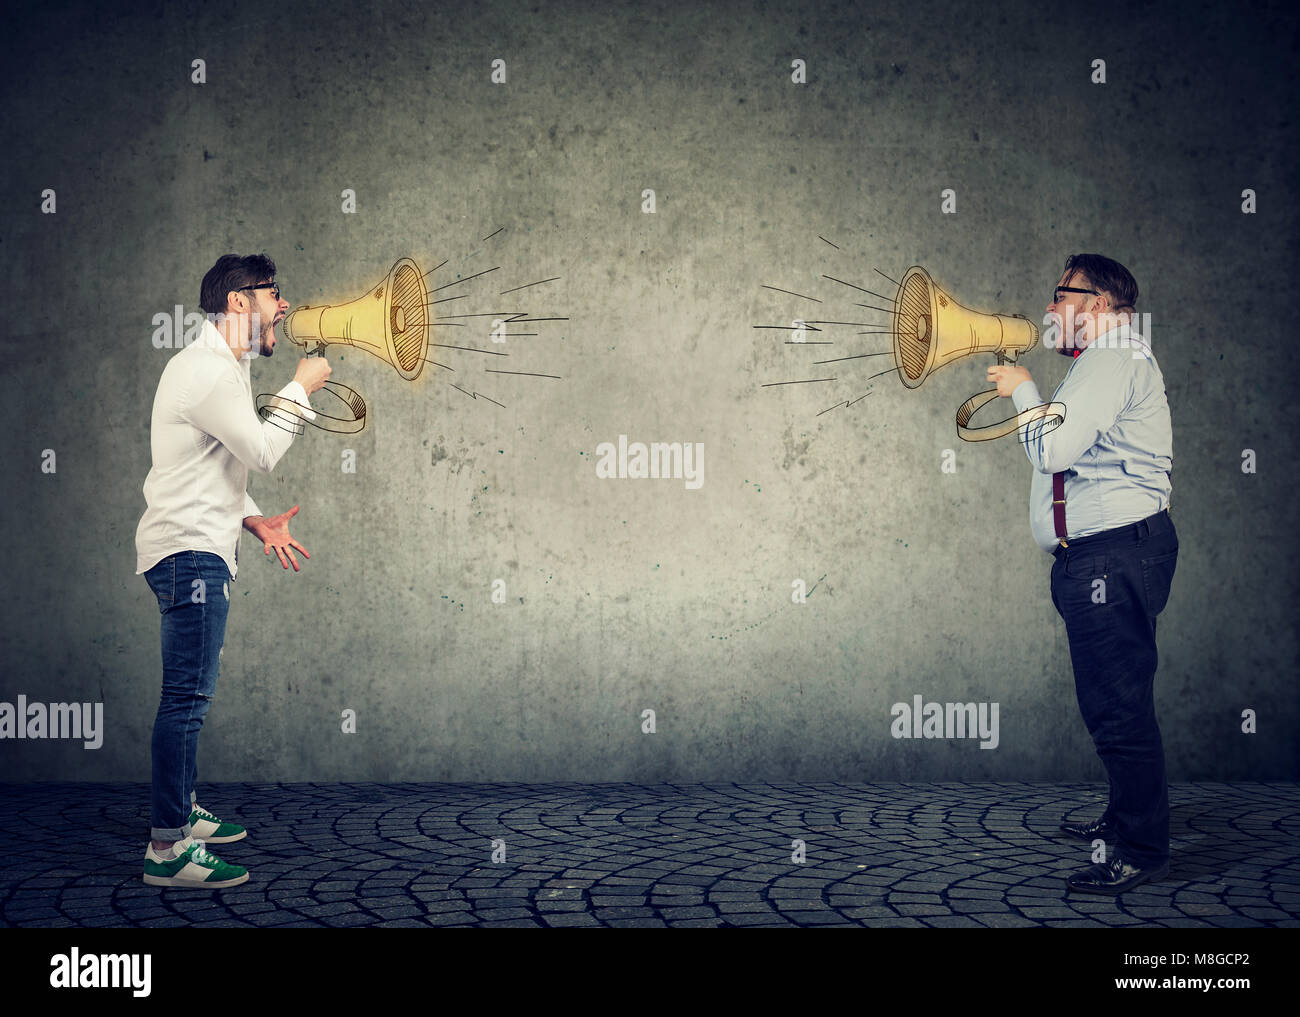 Businessmen screaming into a megaphone at each other having an angry debate - Stock Image